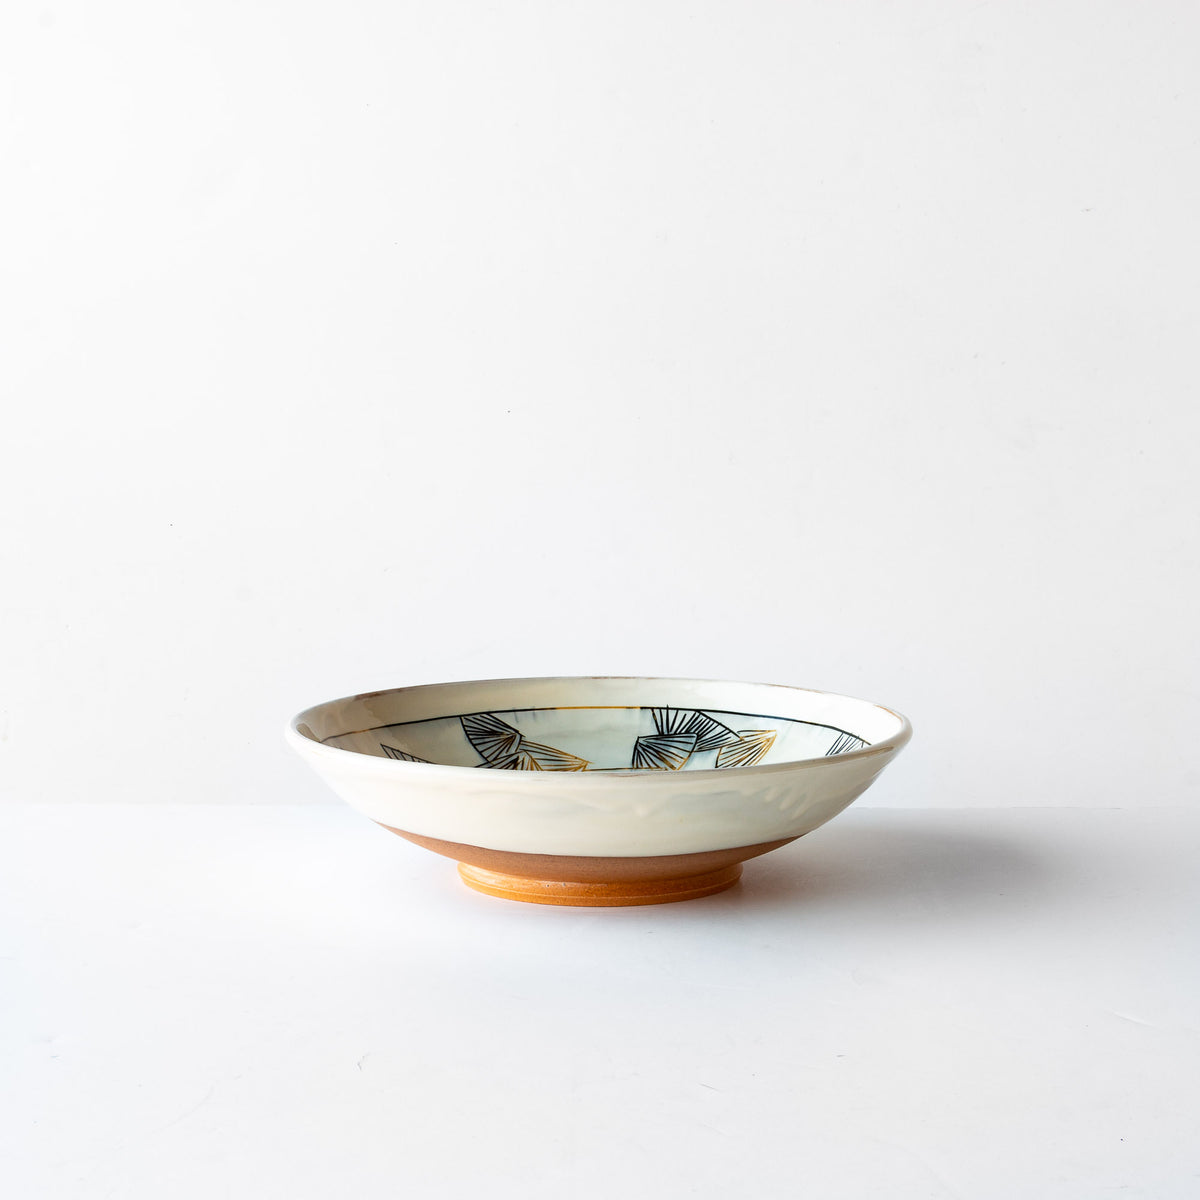 Large Black & Gold Mishima Presentation Bowl - Handmade in Sandstone - Sold by Chic & Basta